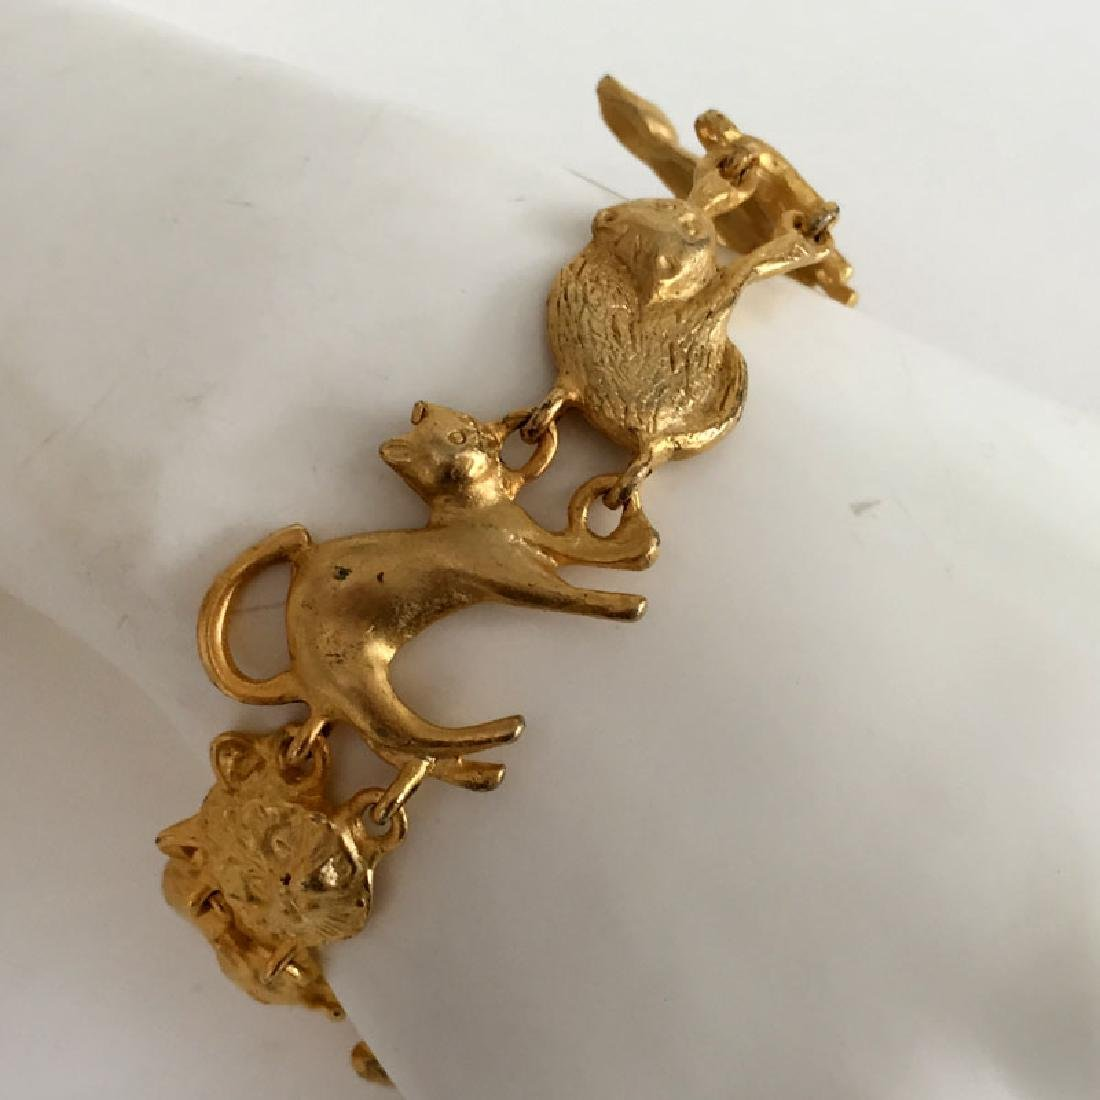 A.J.C.: Gold plated satin finish CATS shaped links - 3